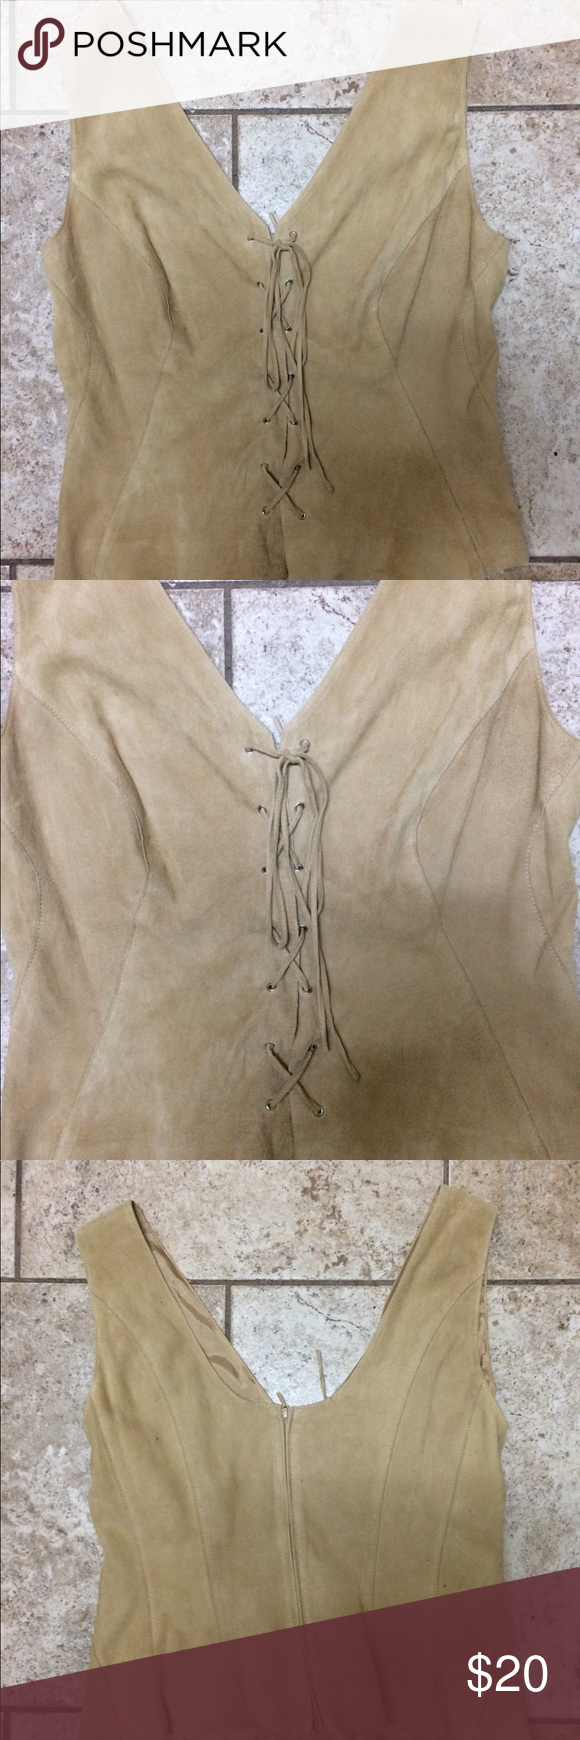 Trixi Shober camel suede lace up vest Trixi Shober suede lace up vest camel size 8 can be worn all year round looks great with jeans and really cool boots very good condition dry clean only so cool looking on thanks for peeping💄 Other